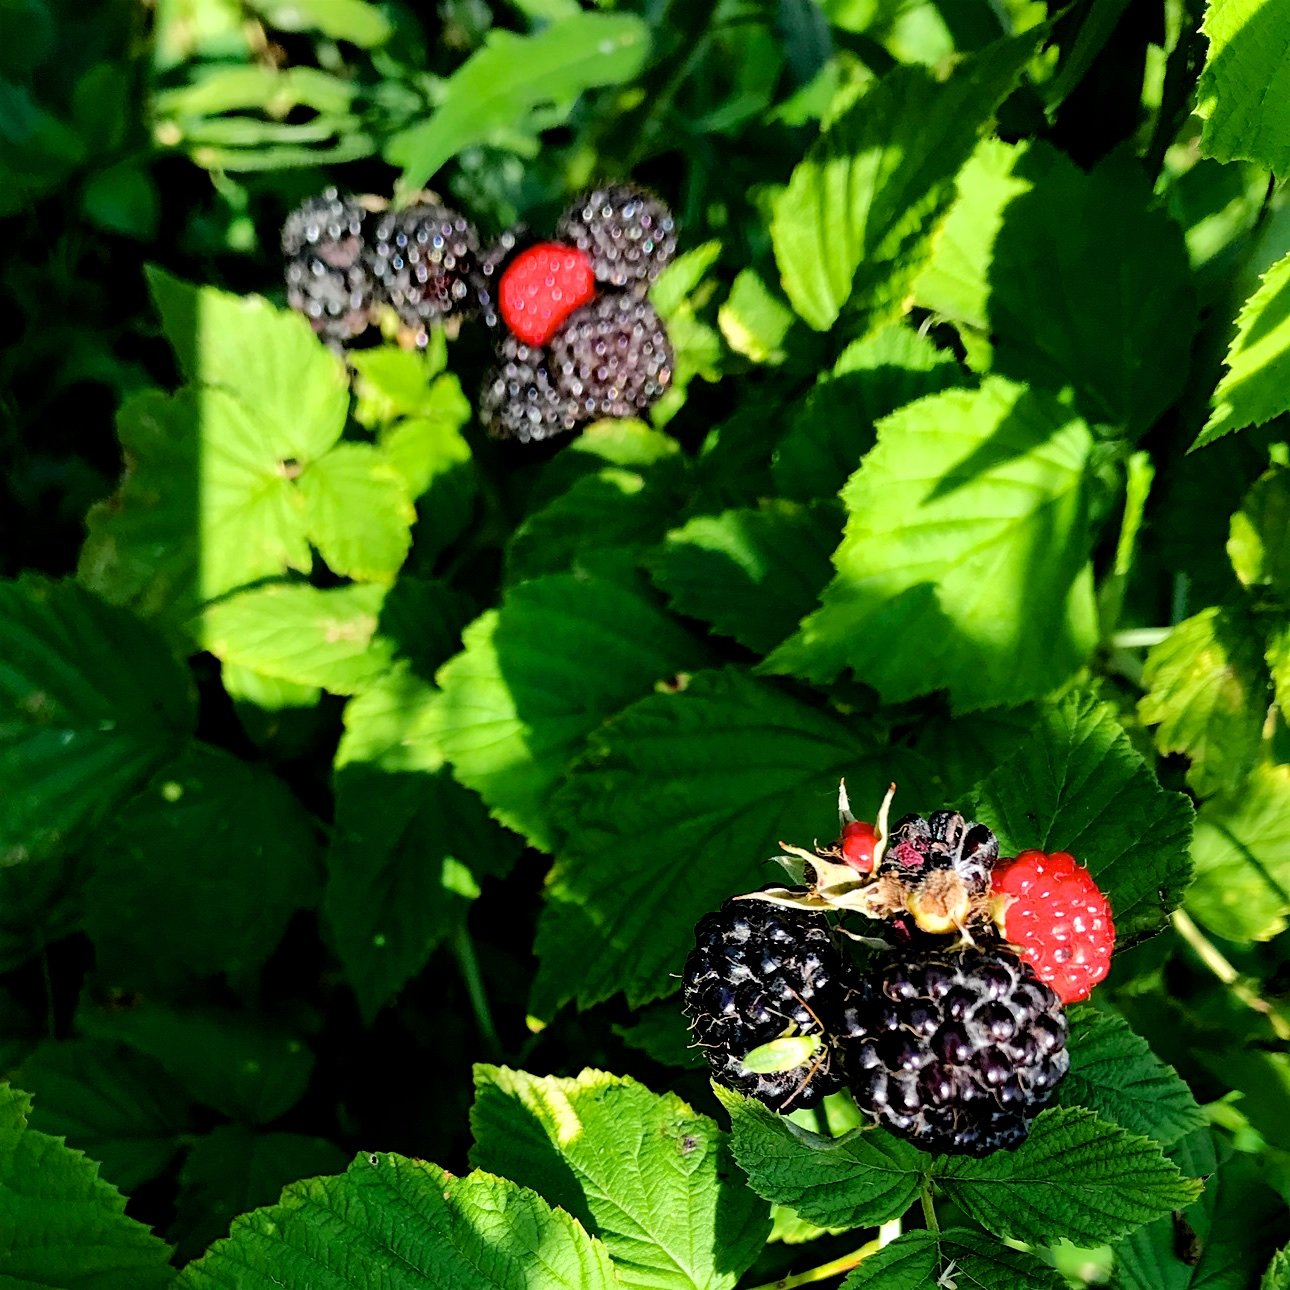 Blackberries & Raspberries